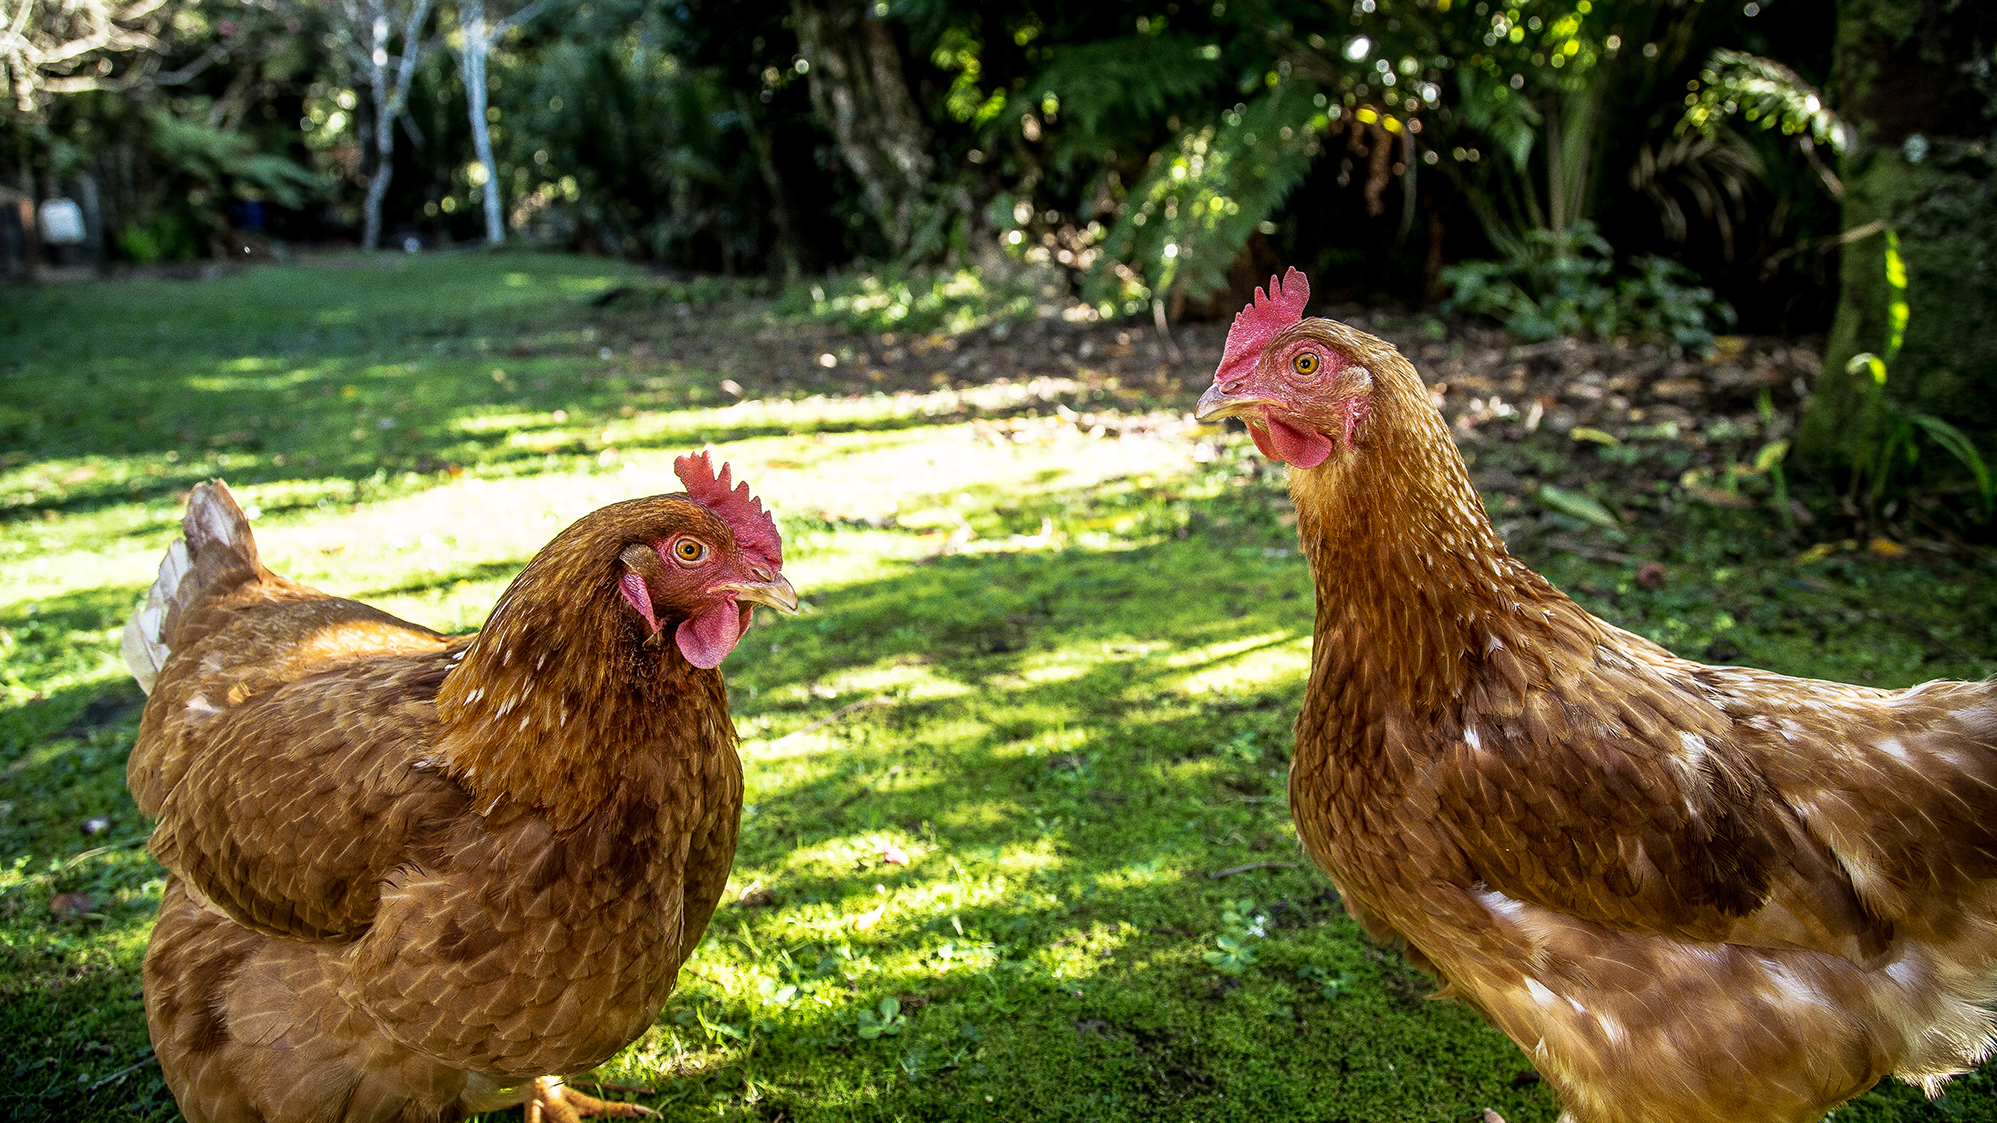 do backyard chickens need more rules bay area bites kqed food